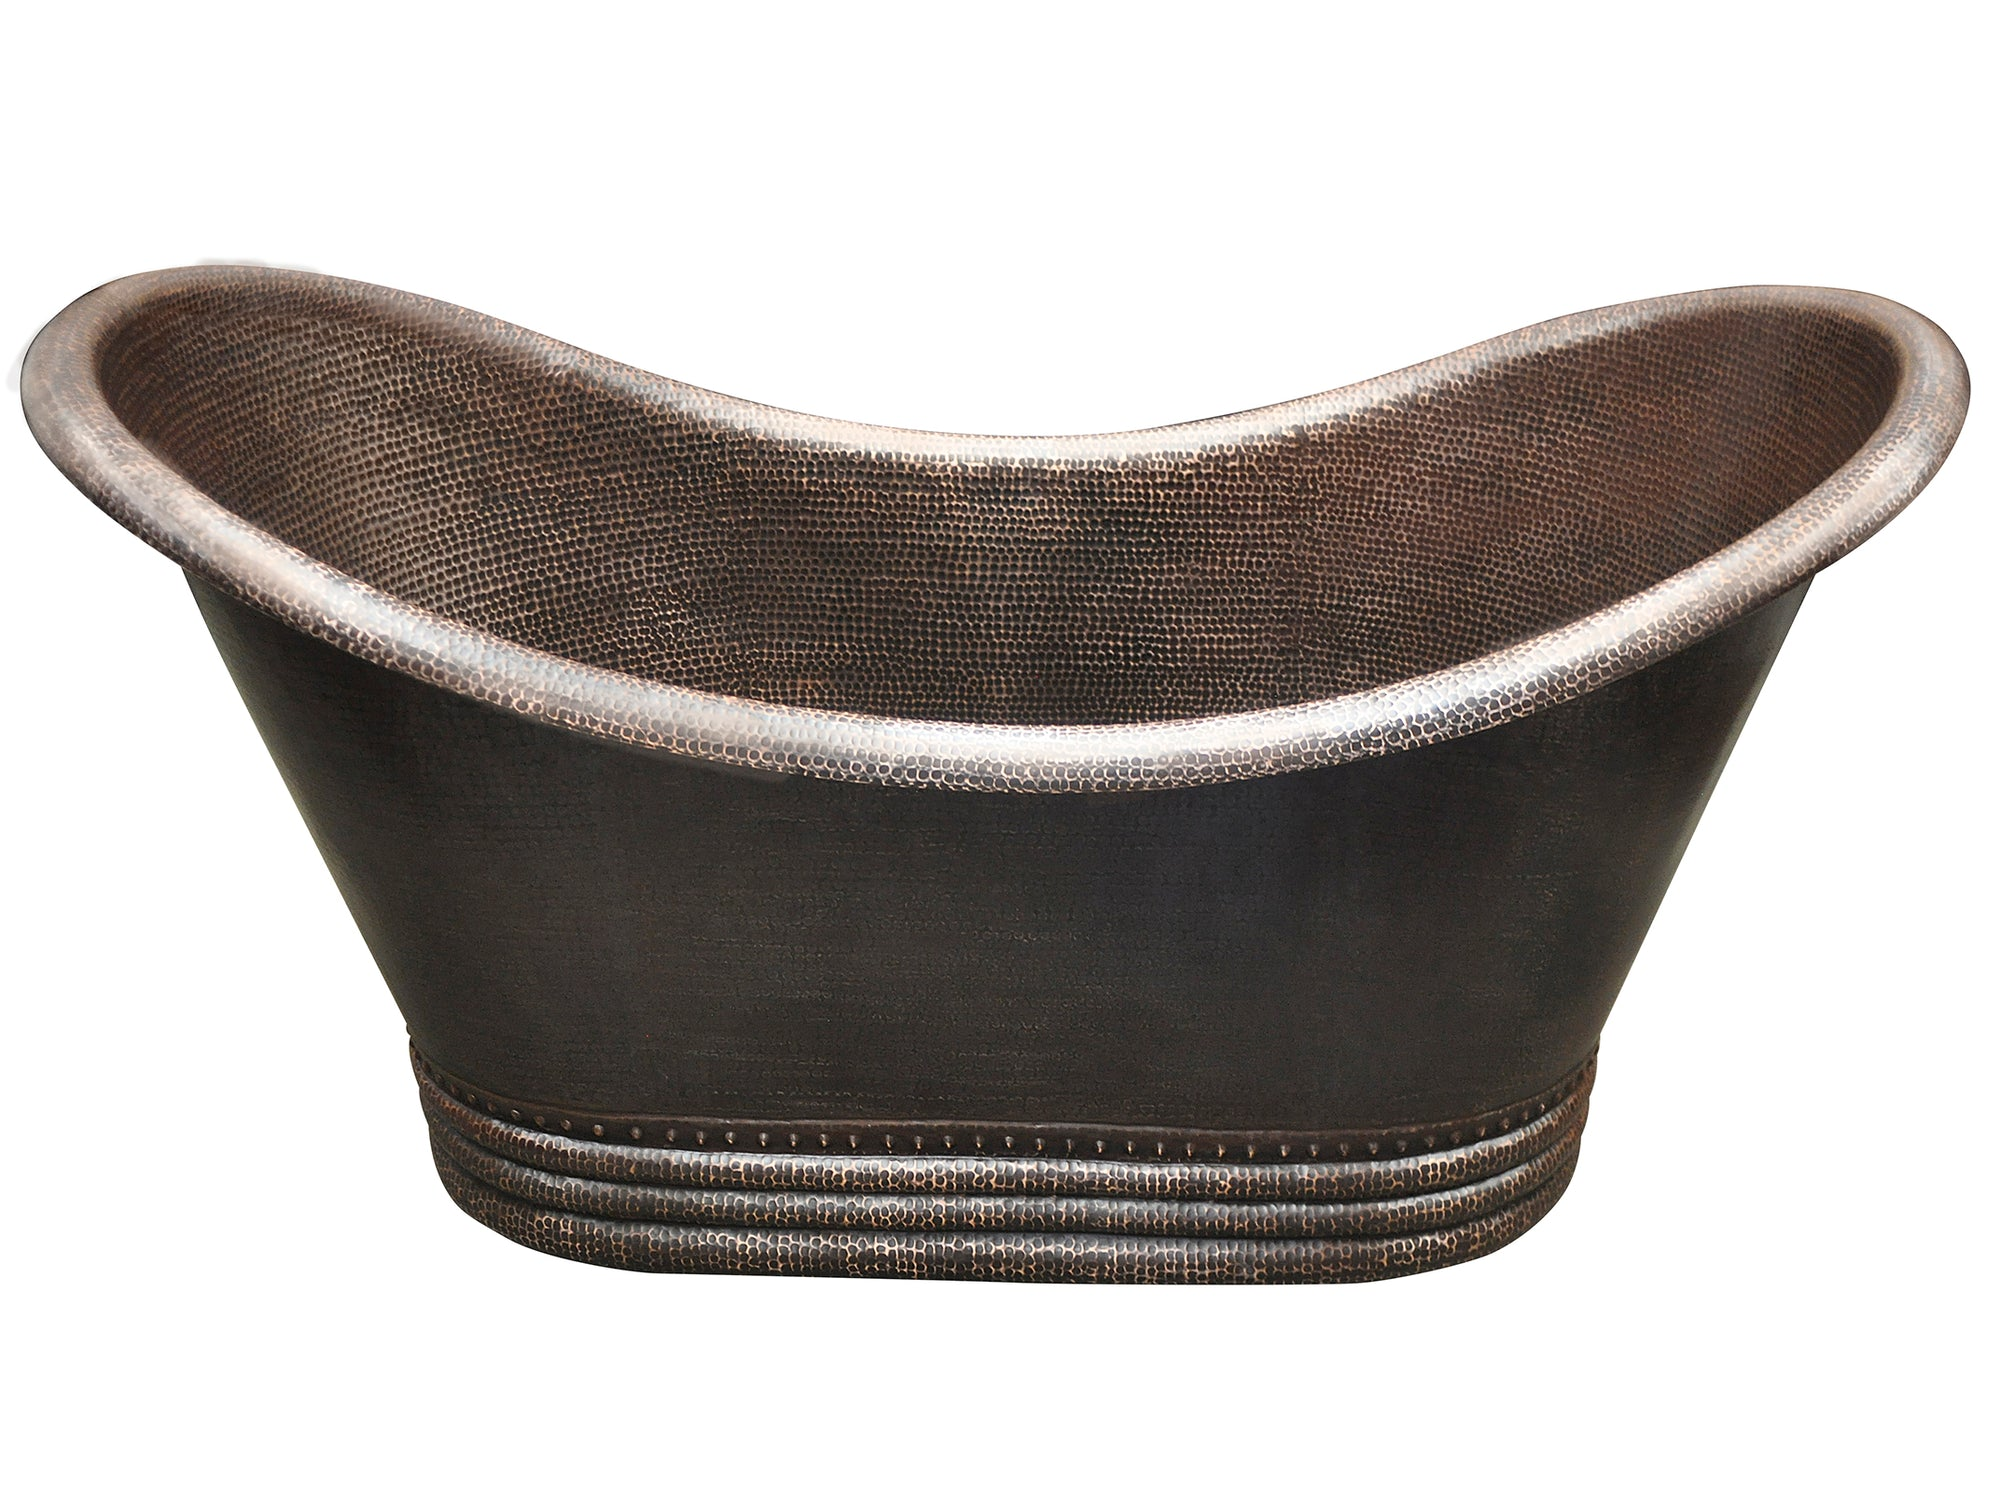 Double Slipper Hammered Copper Bathtub